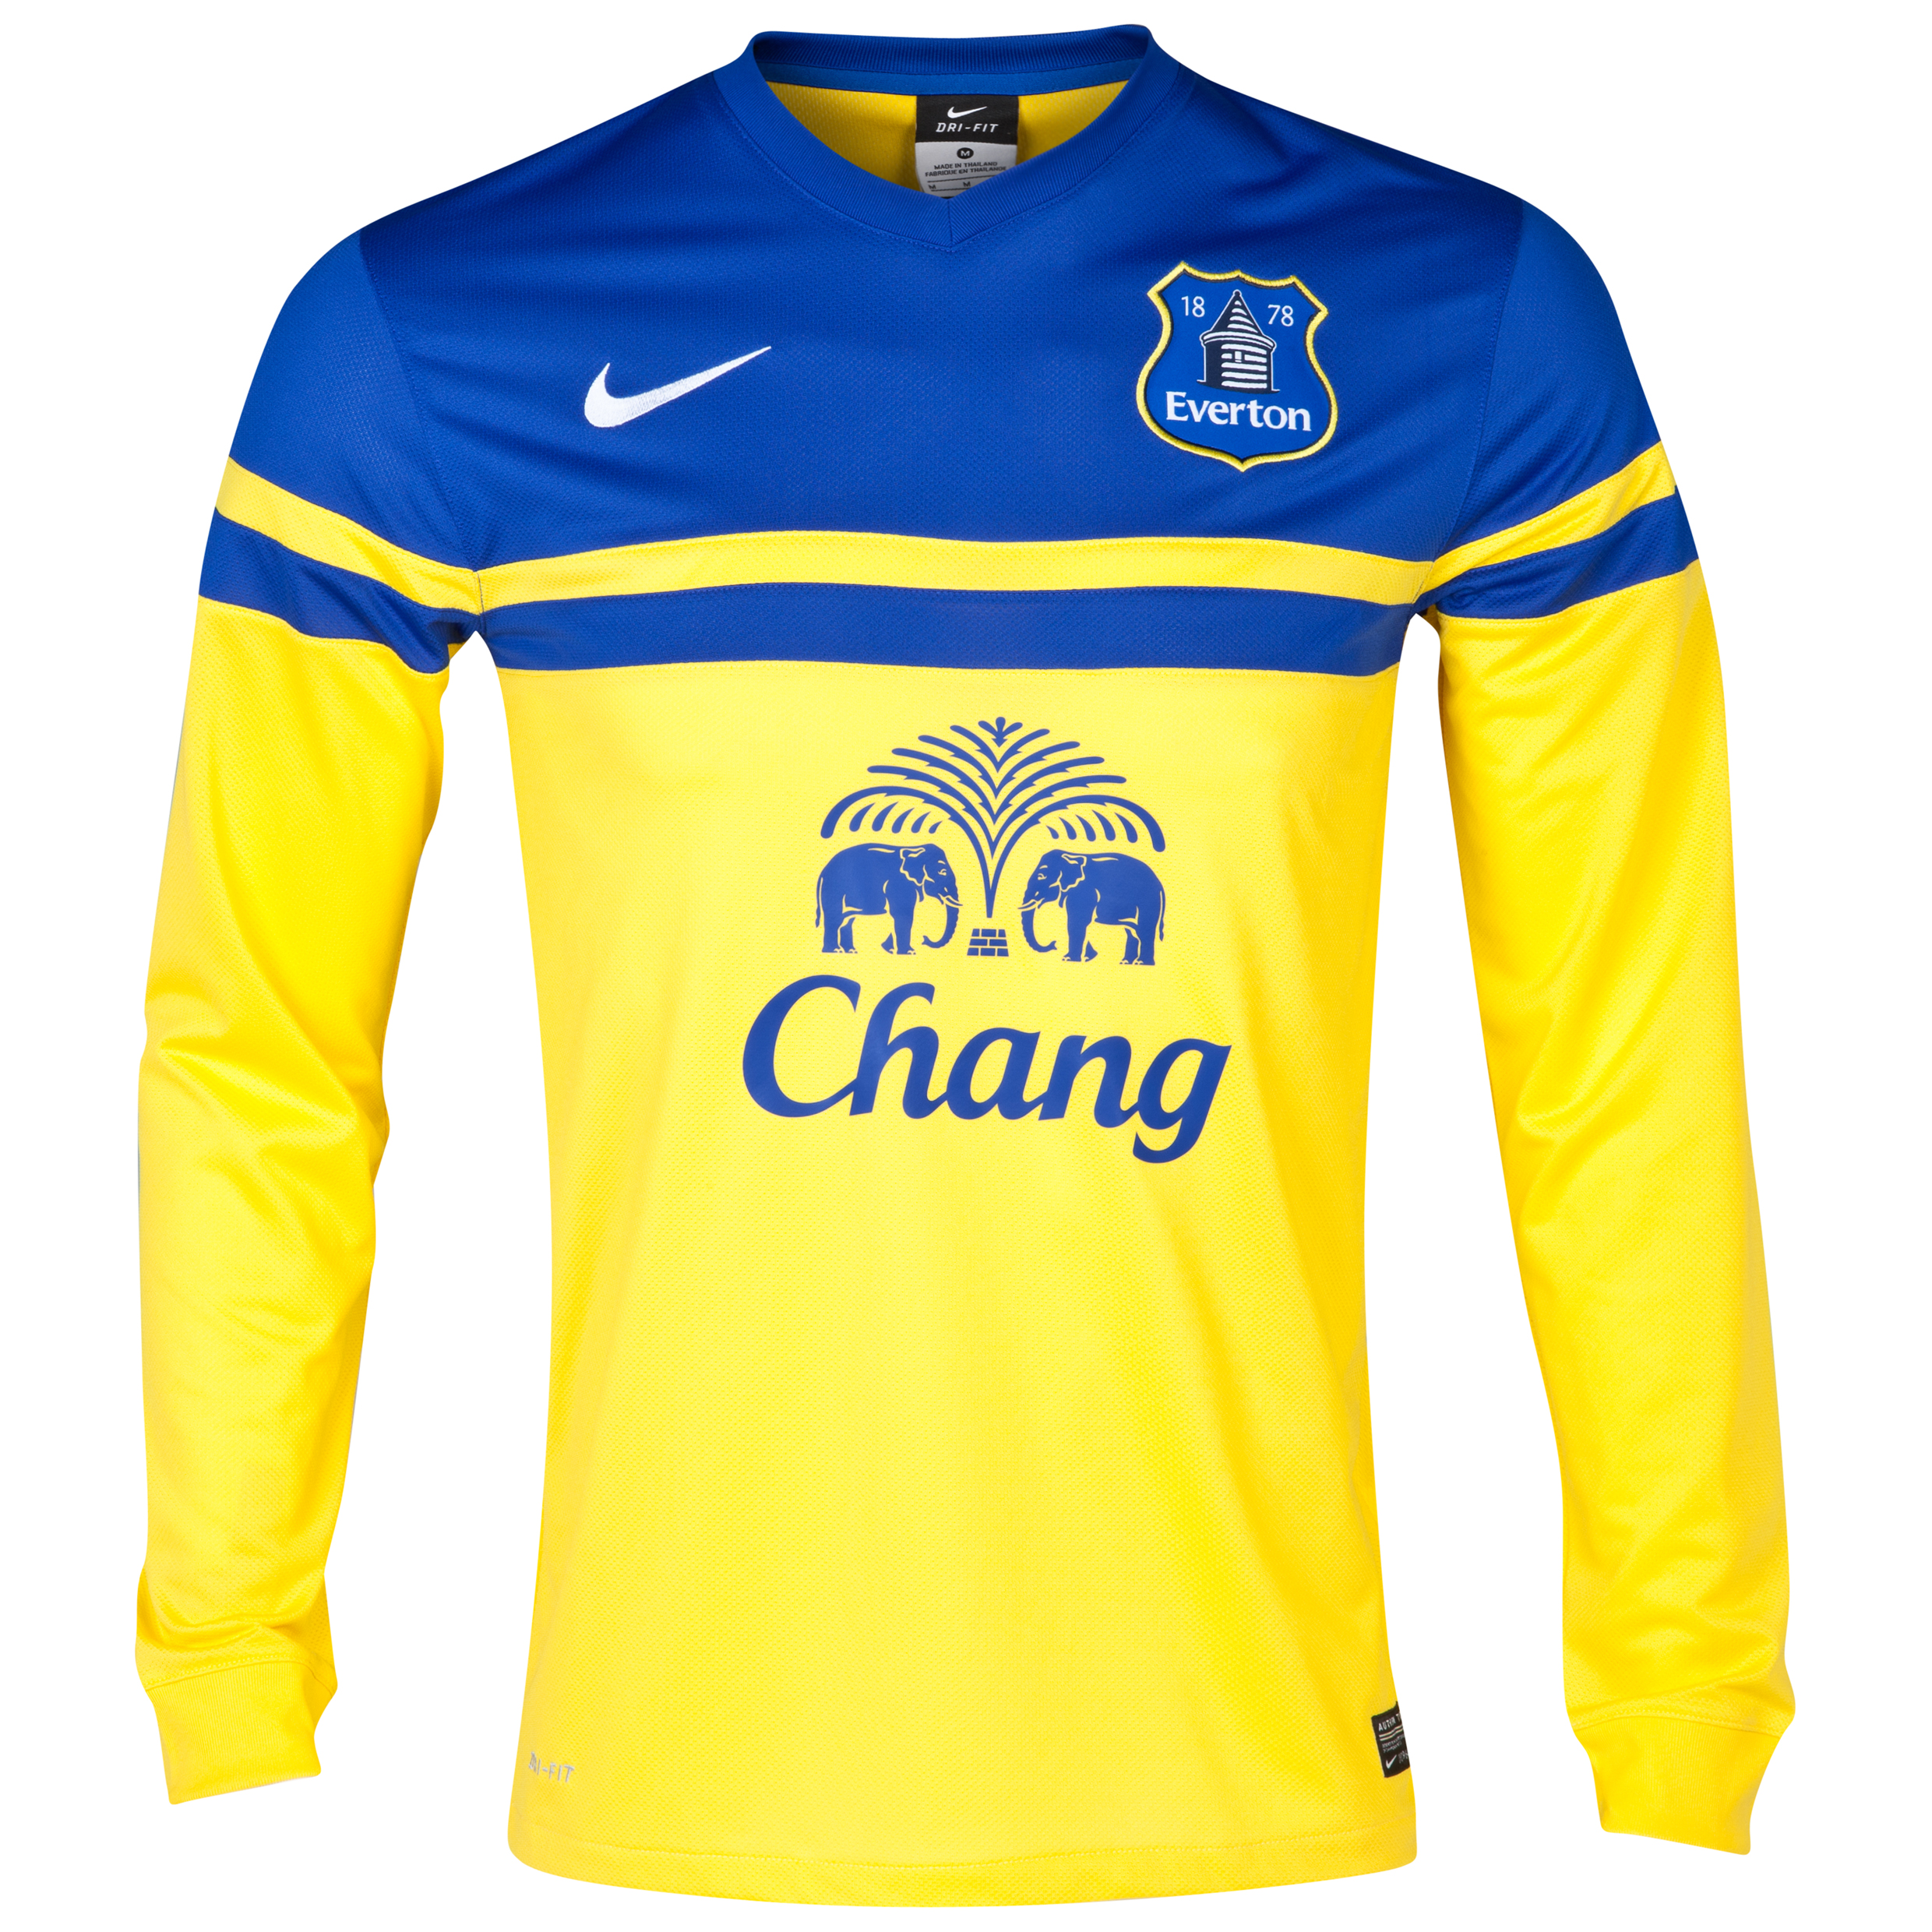 Everton Away Shirt 2013/14 - Long Sleeved Yellow